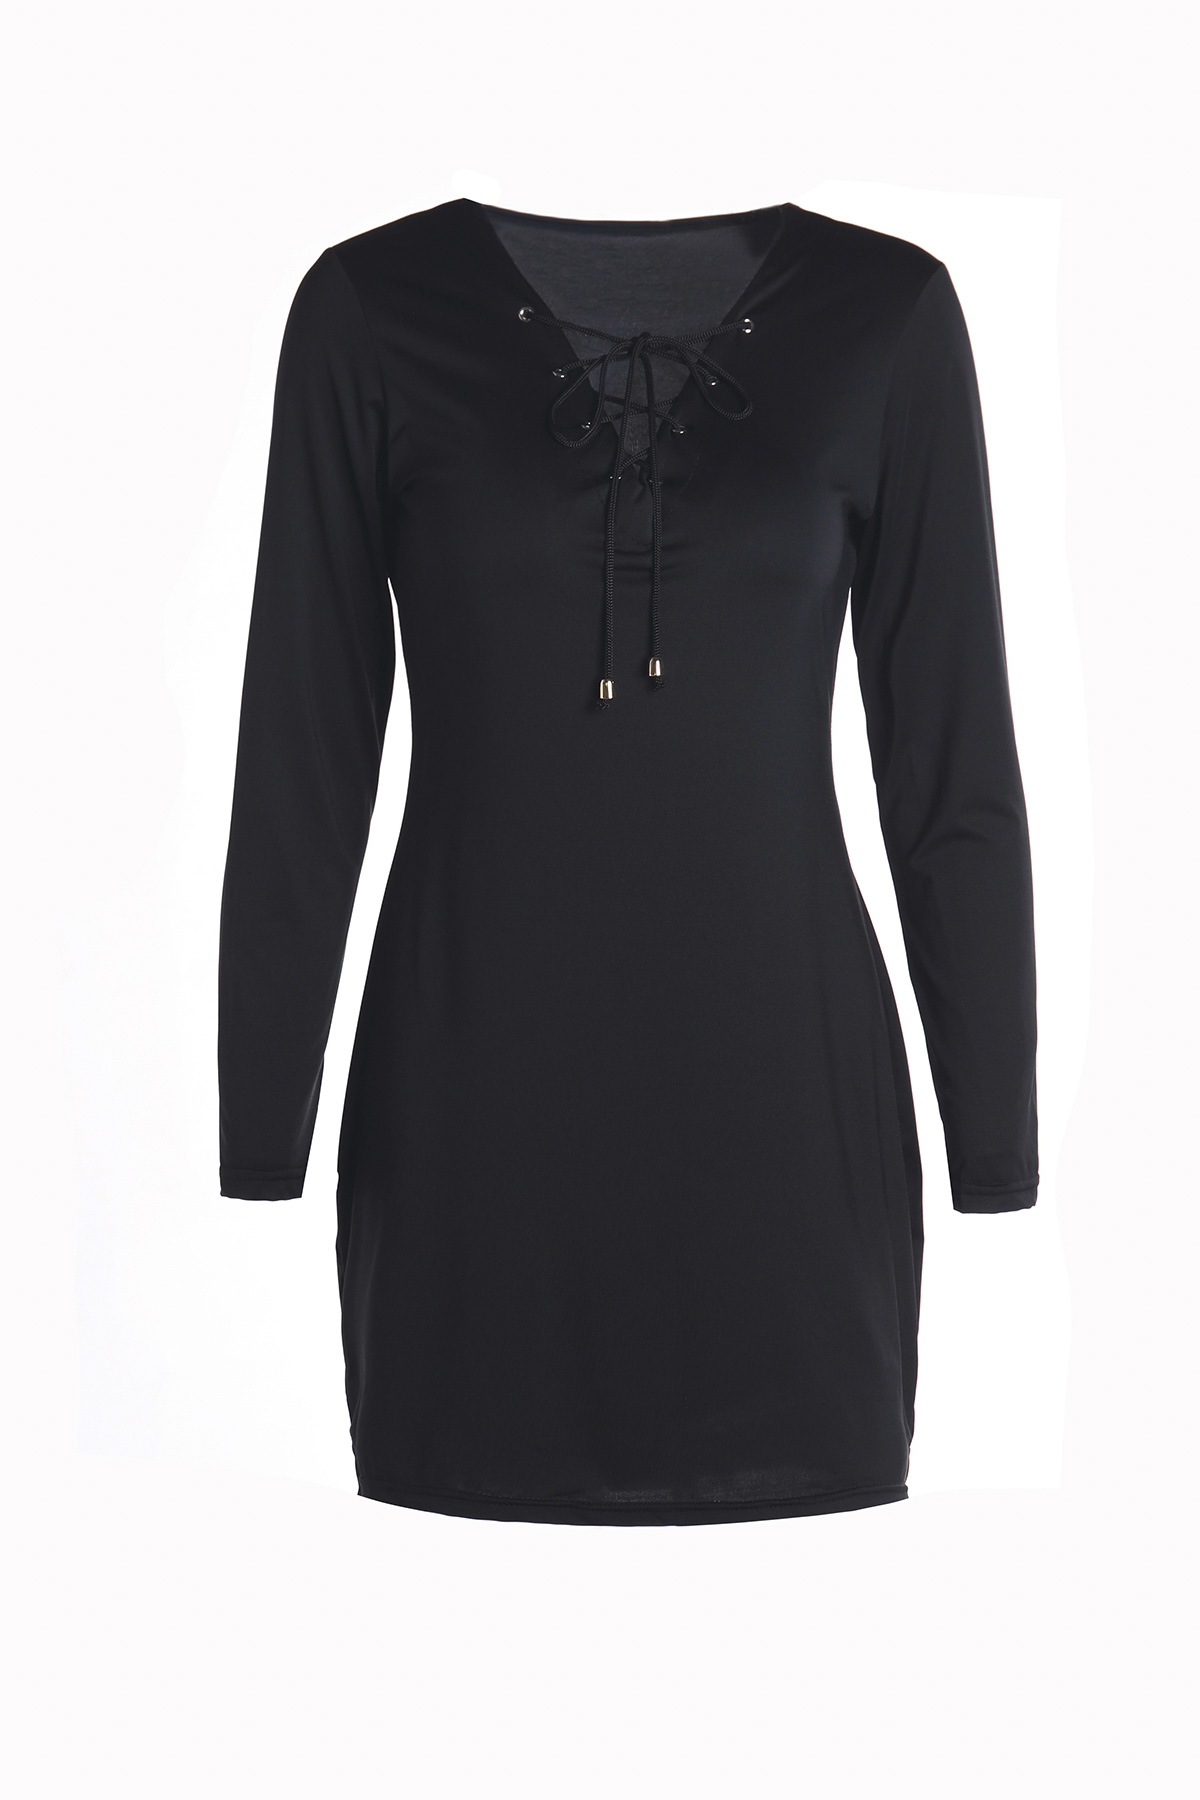 Long Sleeves Plunging Neck Hollow Out Black Dress